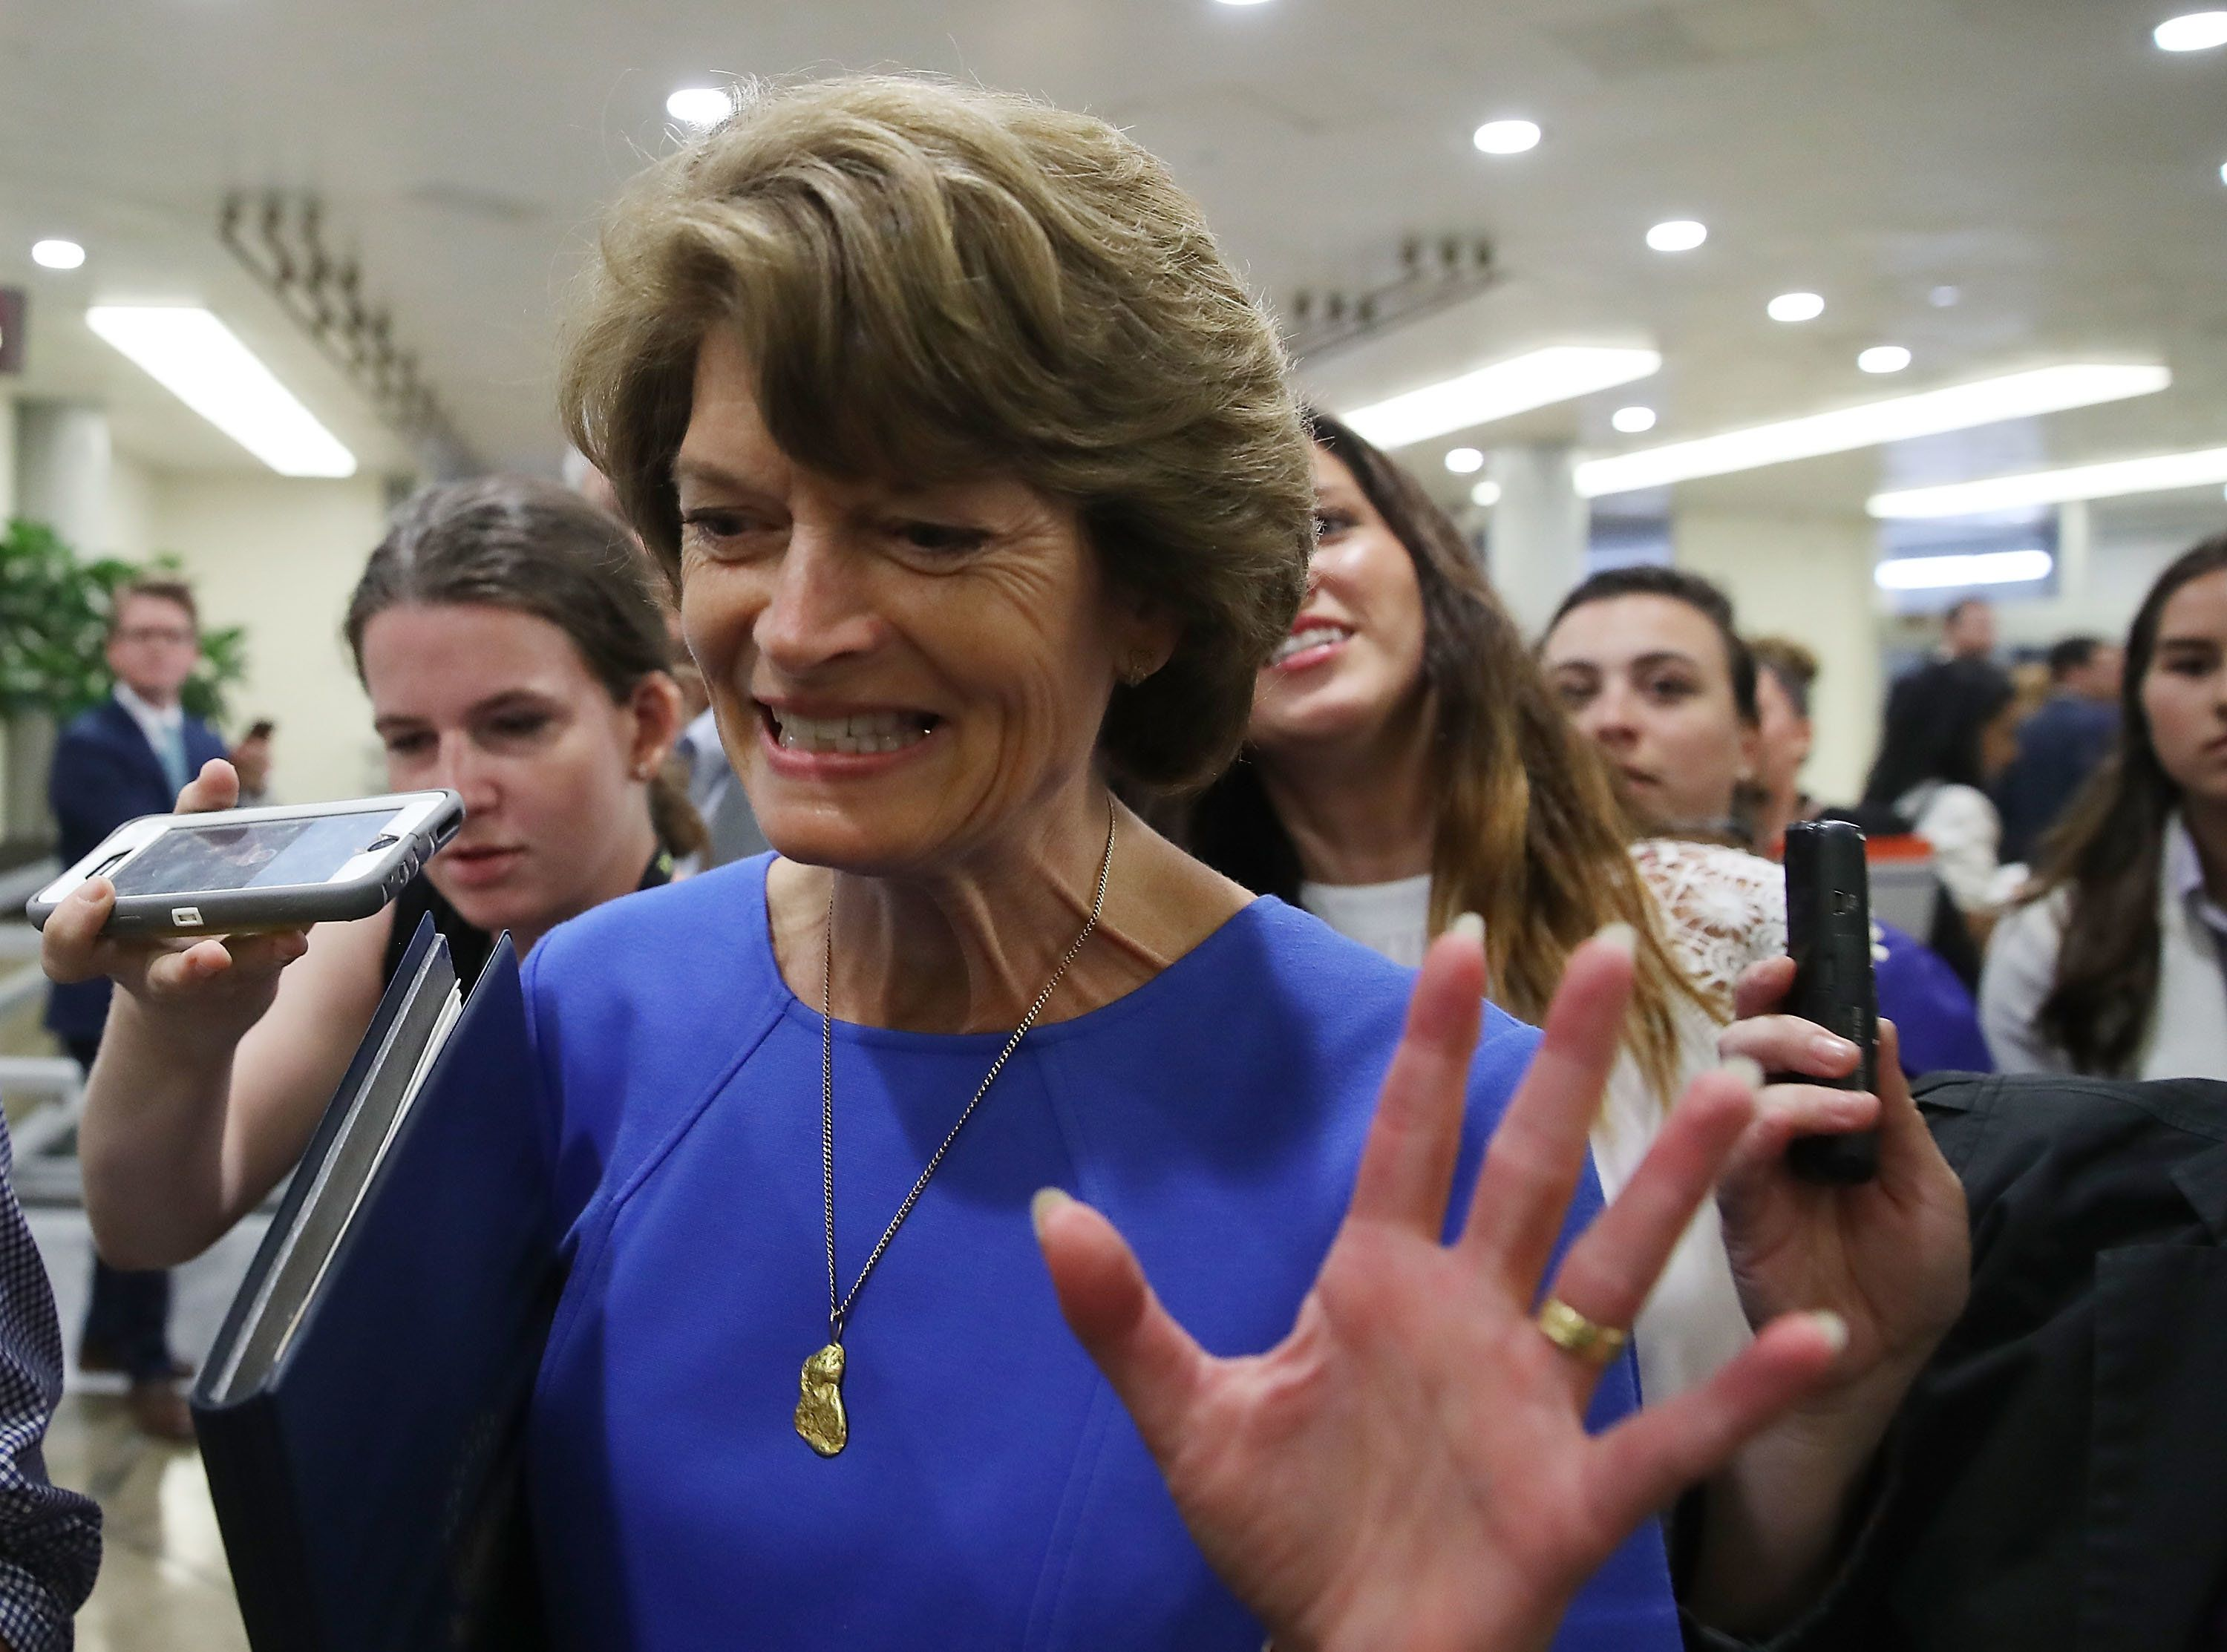 WASHINGTON, DC - JULY 18:  Sen. Lisa Murkowski (R-AK) is followed by reporters as she walks through the Senate Subway inside of the US Capitol on July 18, 2017 in Washington, DC. Sen. Murkowski said she would vote no Senate Majority Leader Mitch McConnell's bid to overhaul the Affordable Care Act.  (Photo by Mark Wilson/Getty Images)